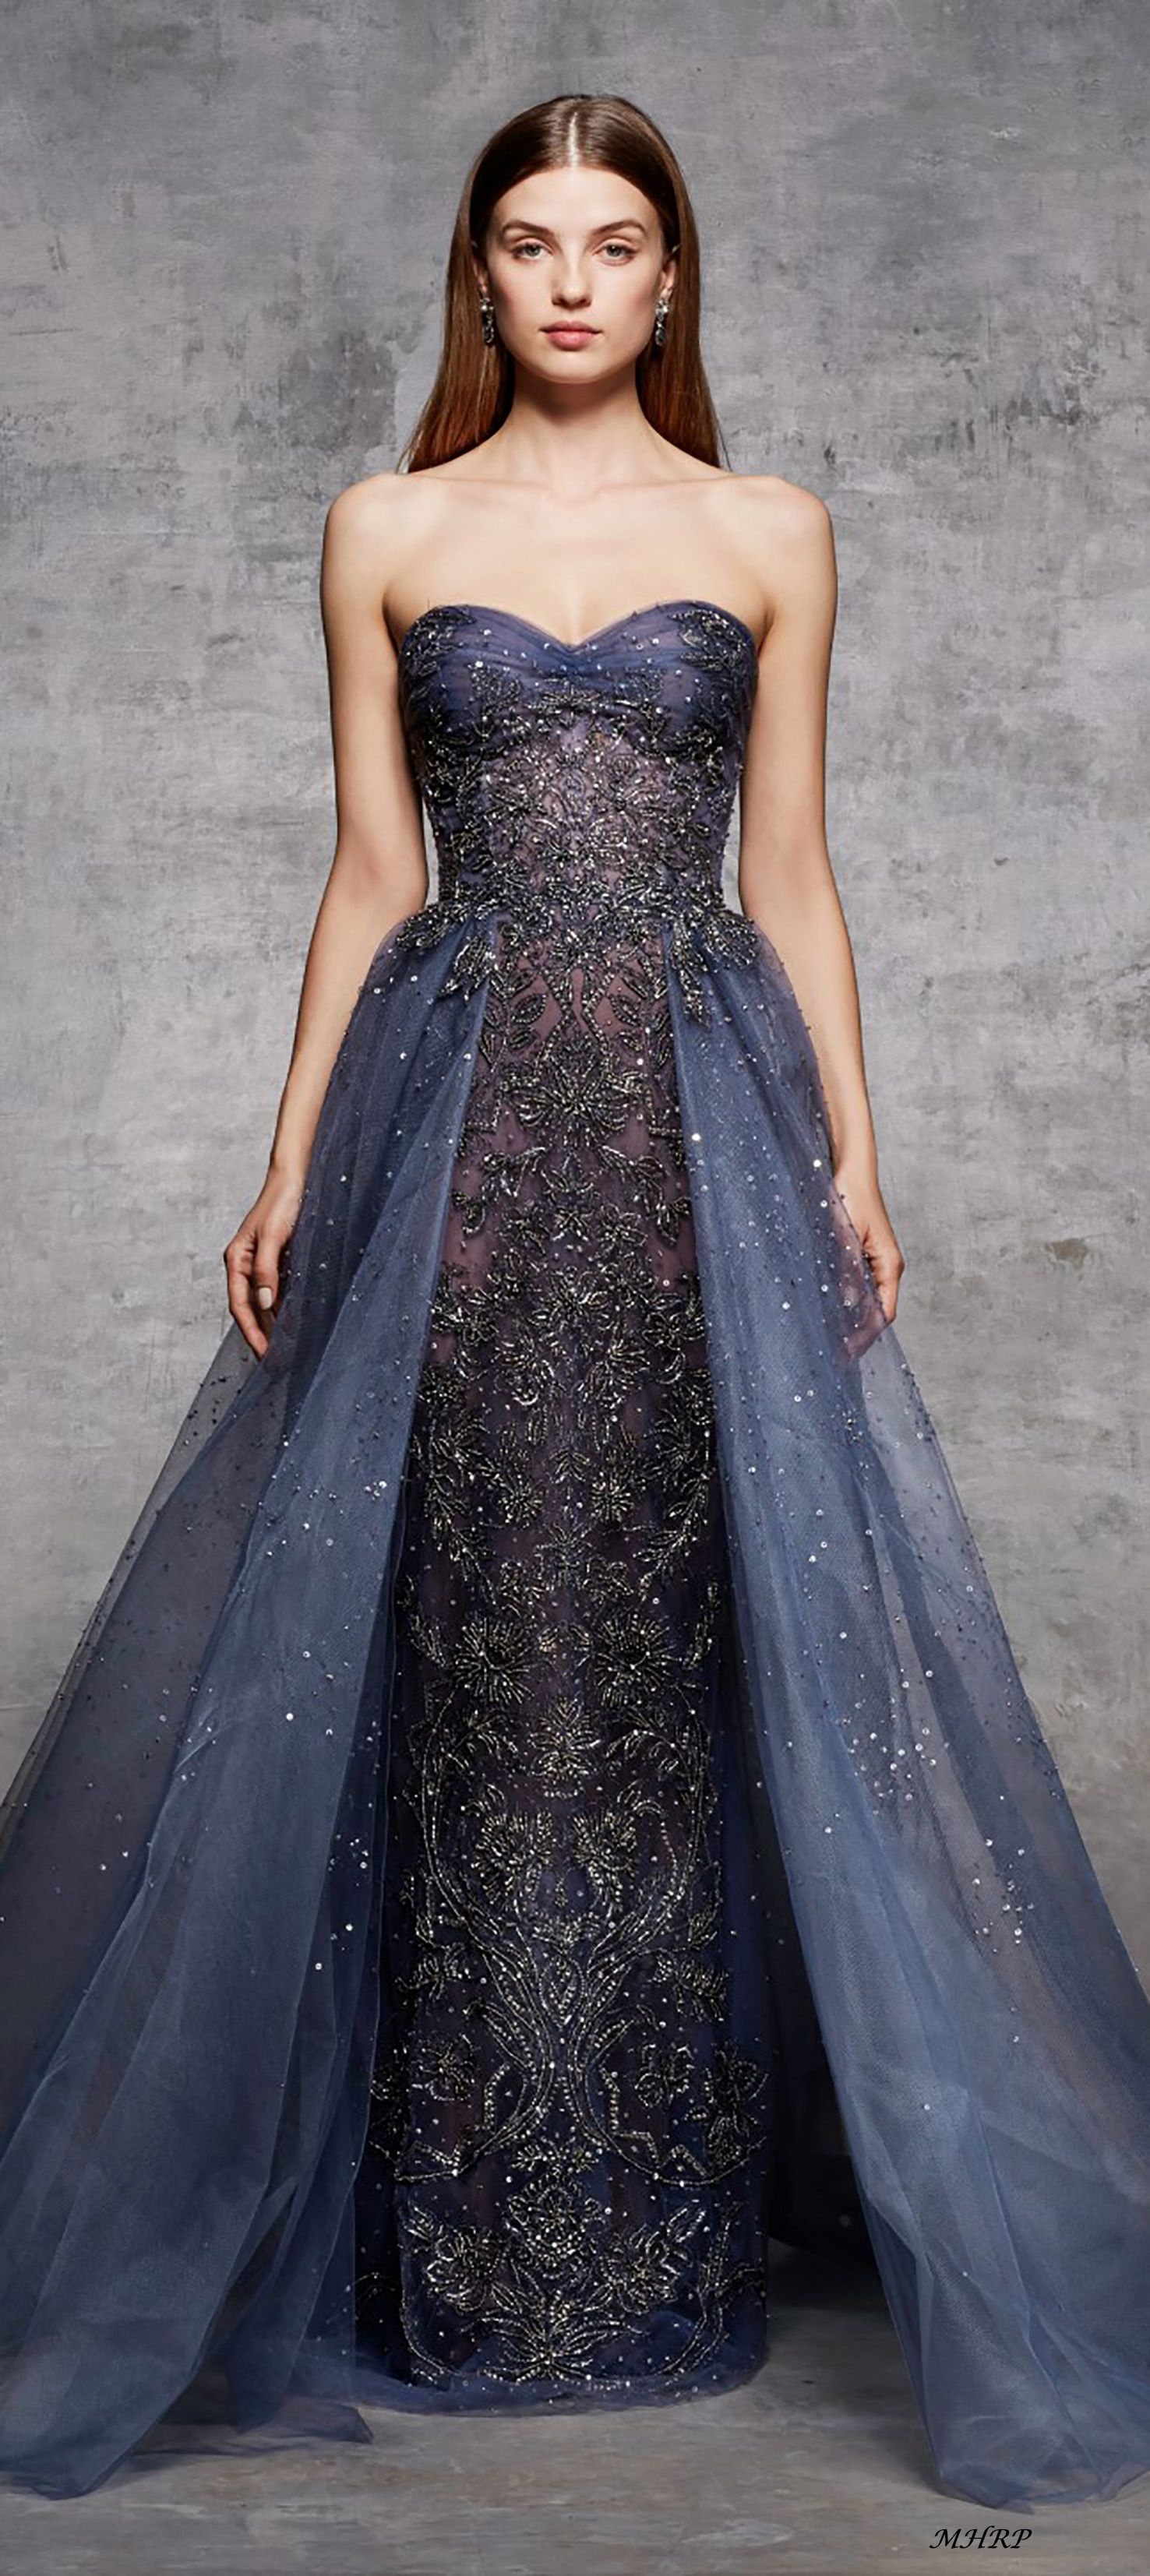 7b258f6e6ba Marchesa Pre-Fall 2018 - image pinned from marchesa.com | when I'm ...